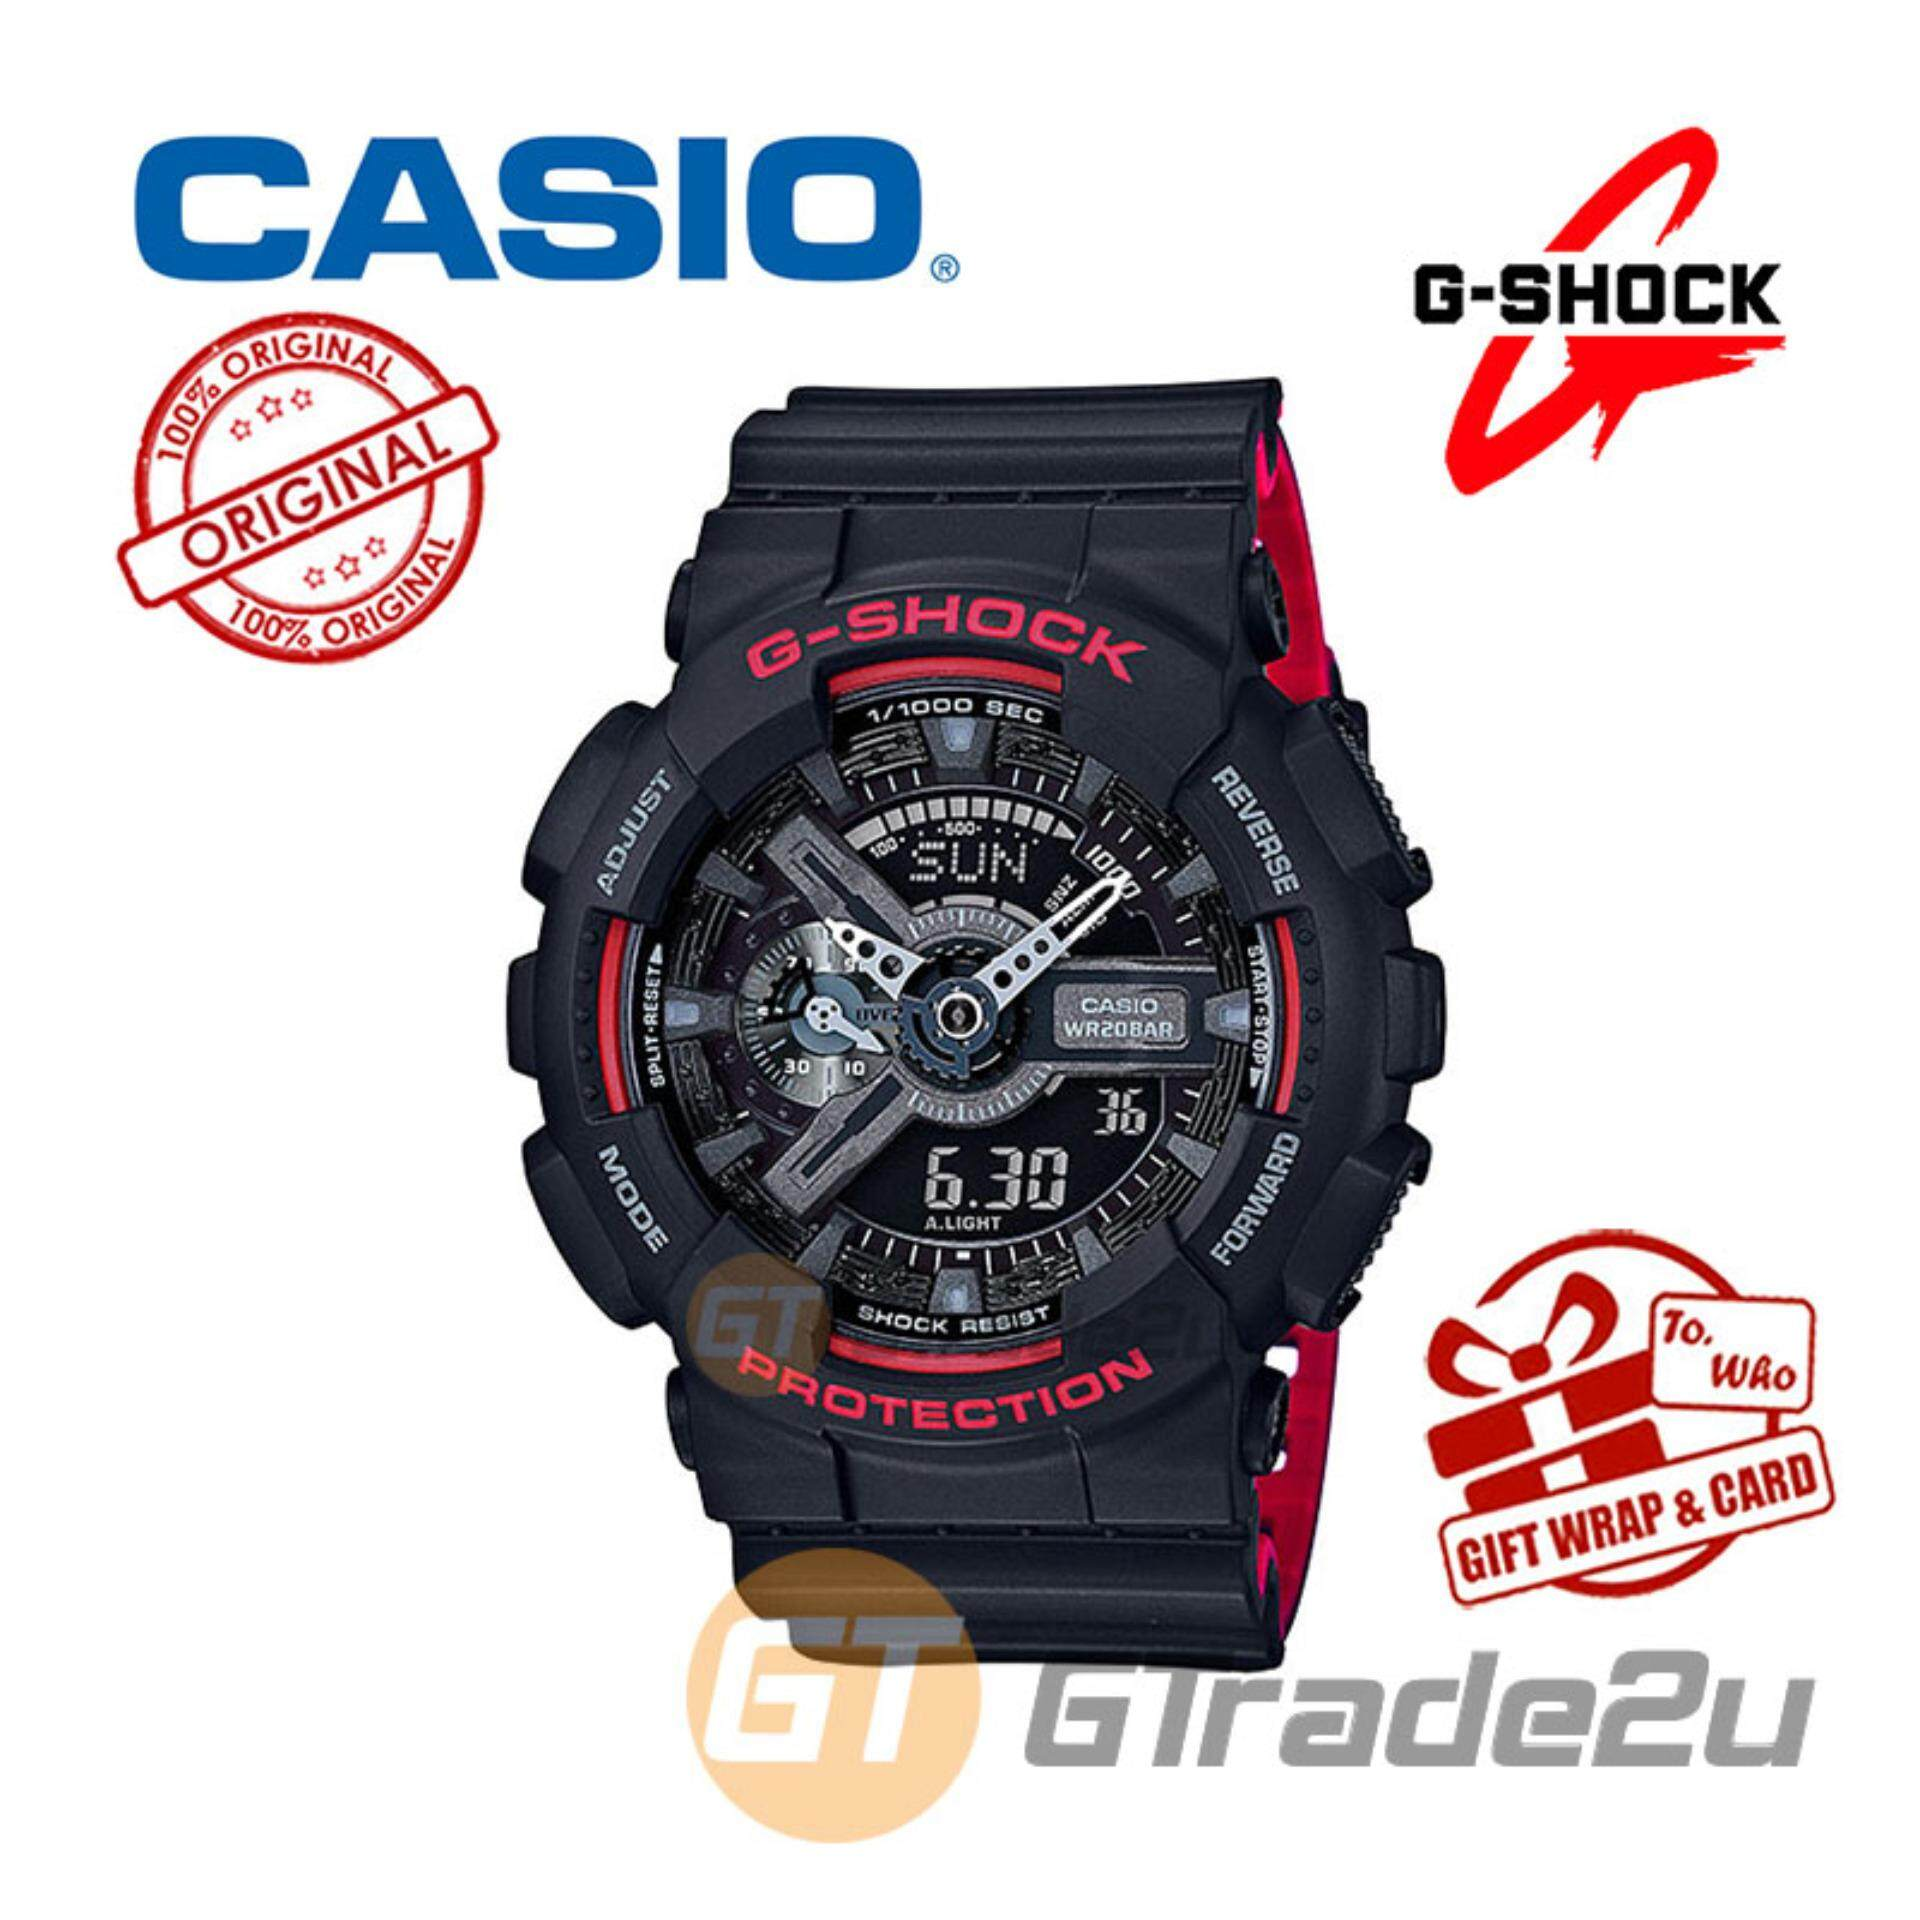 Casio G Shock Watches With Best Price At Lazada Malaysia Gma S120mf 7a2 Ga 110hr 1a Digital Analog Watch Bi Color